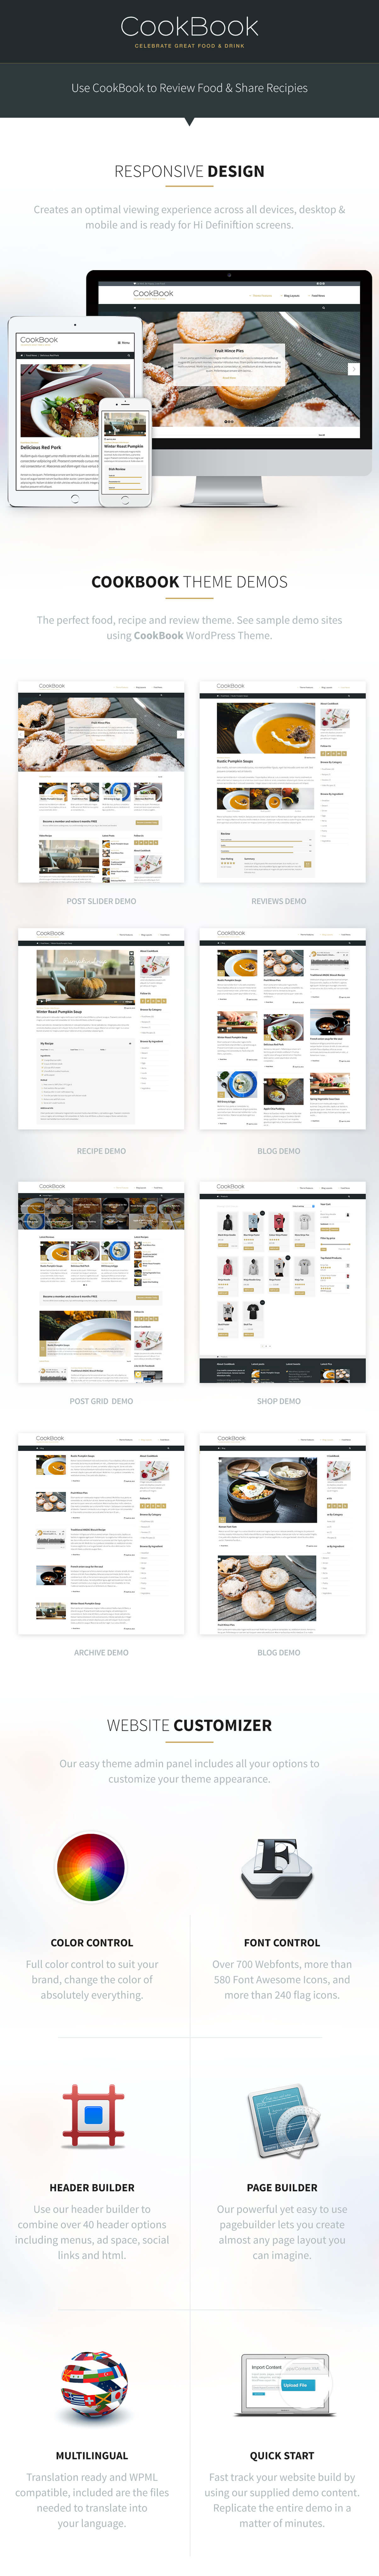 CookBook WordPress Theme